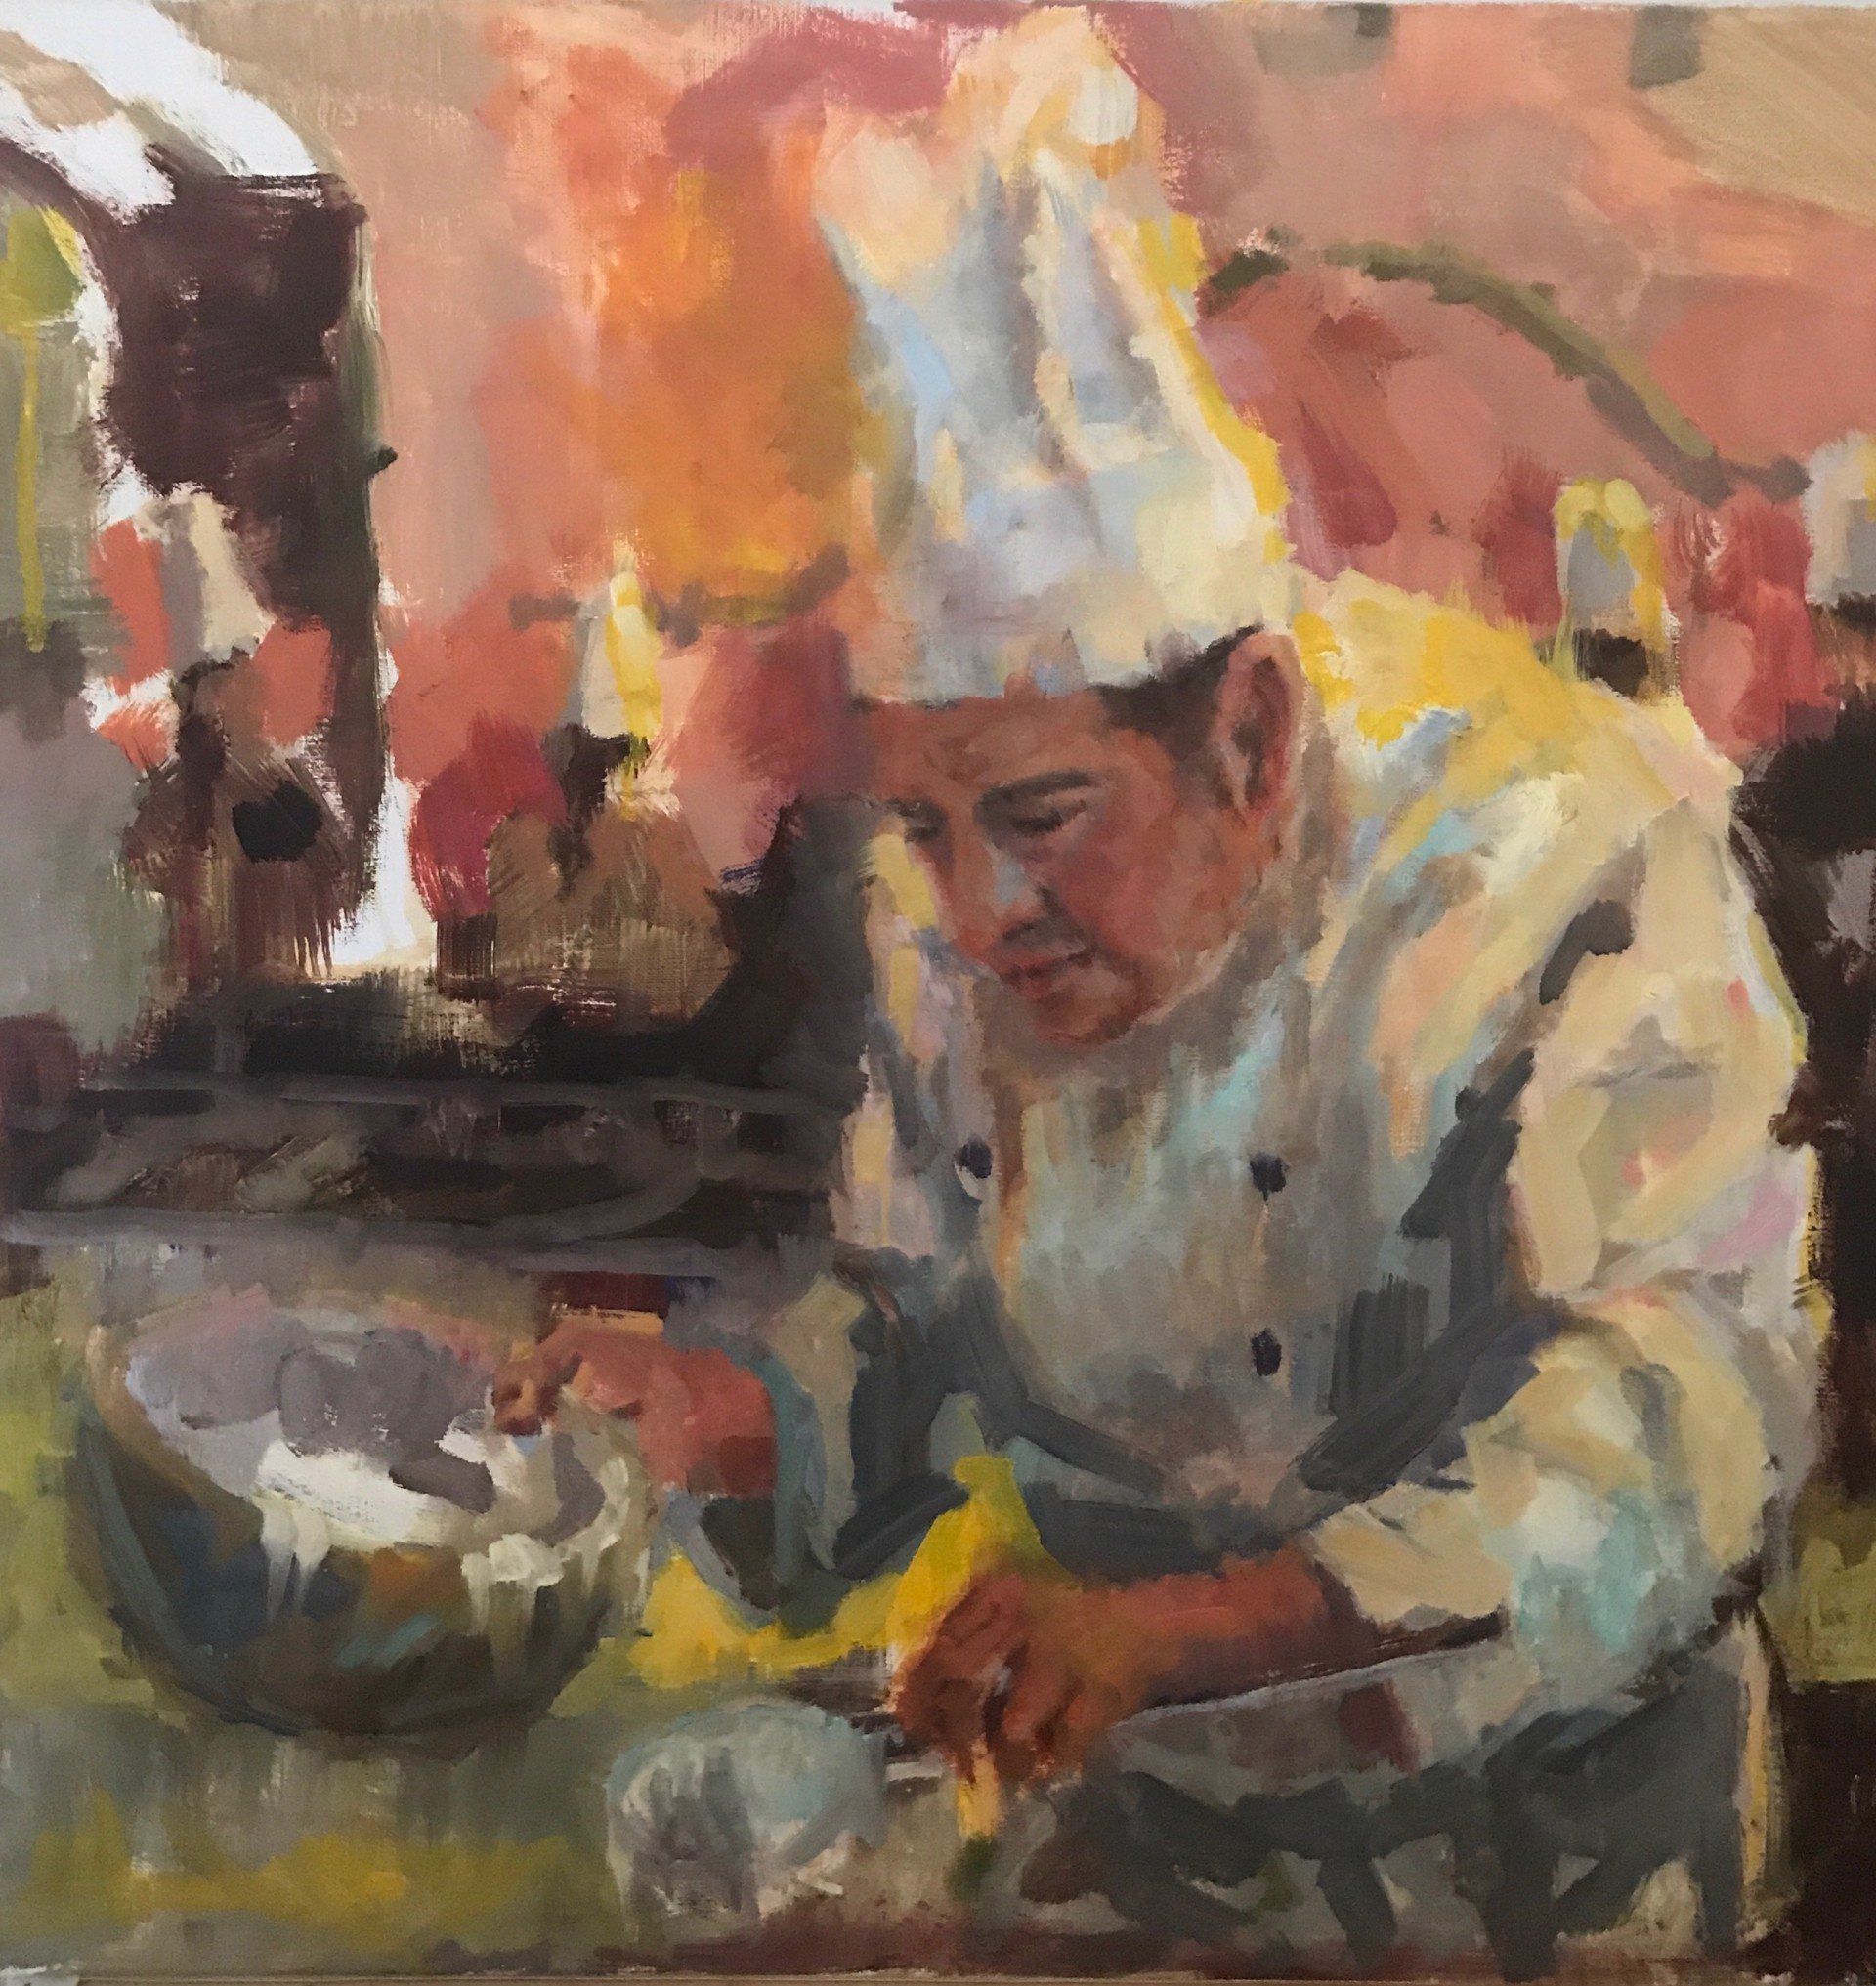 The Pastry Chef by Laurie Meyer